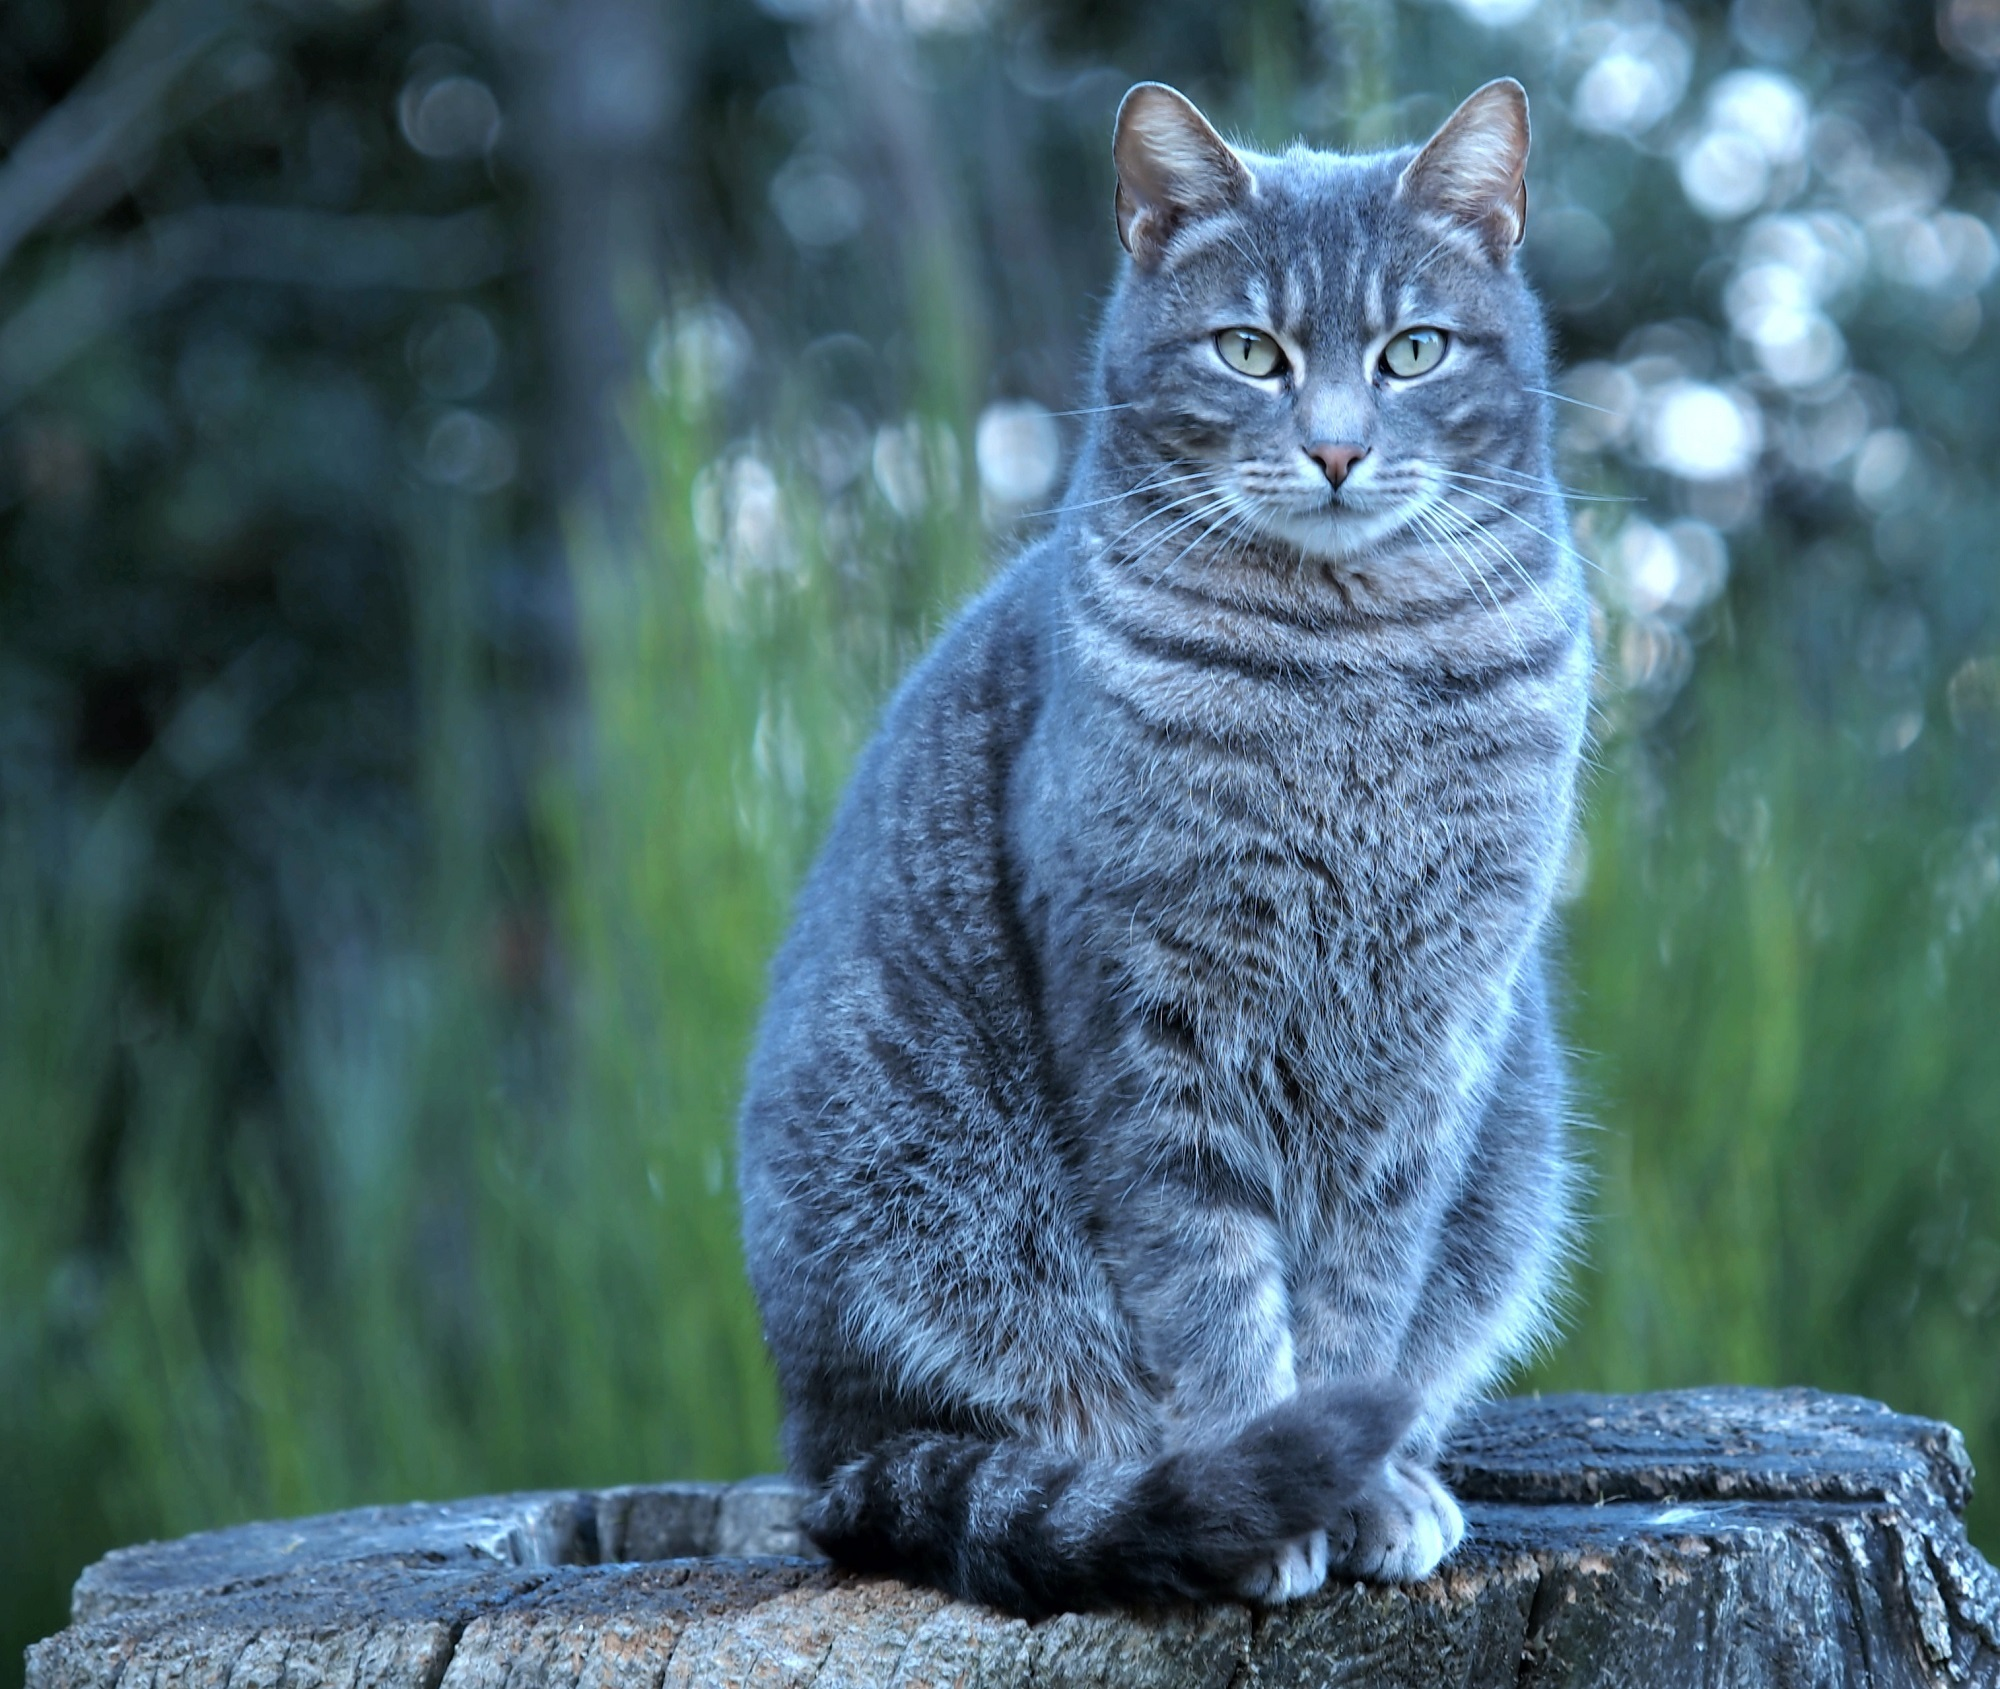 Grey Tabby Cat Sits On Tree Stump Outdoor Free Image